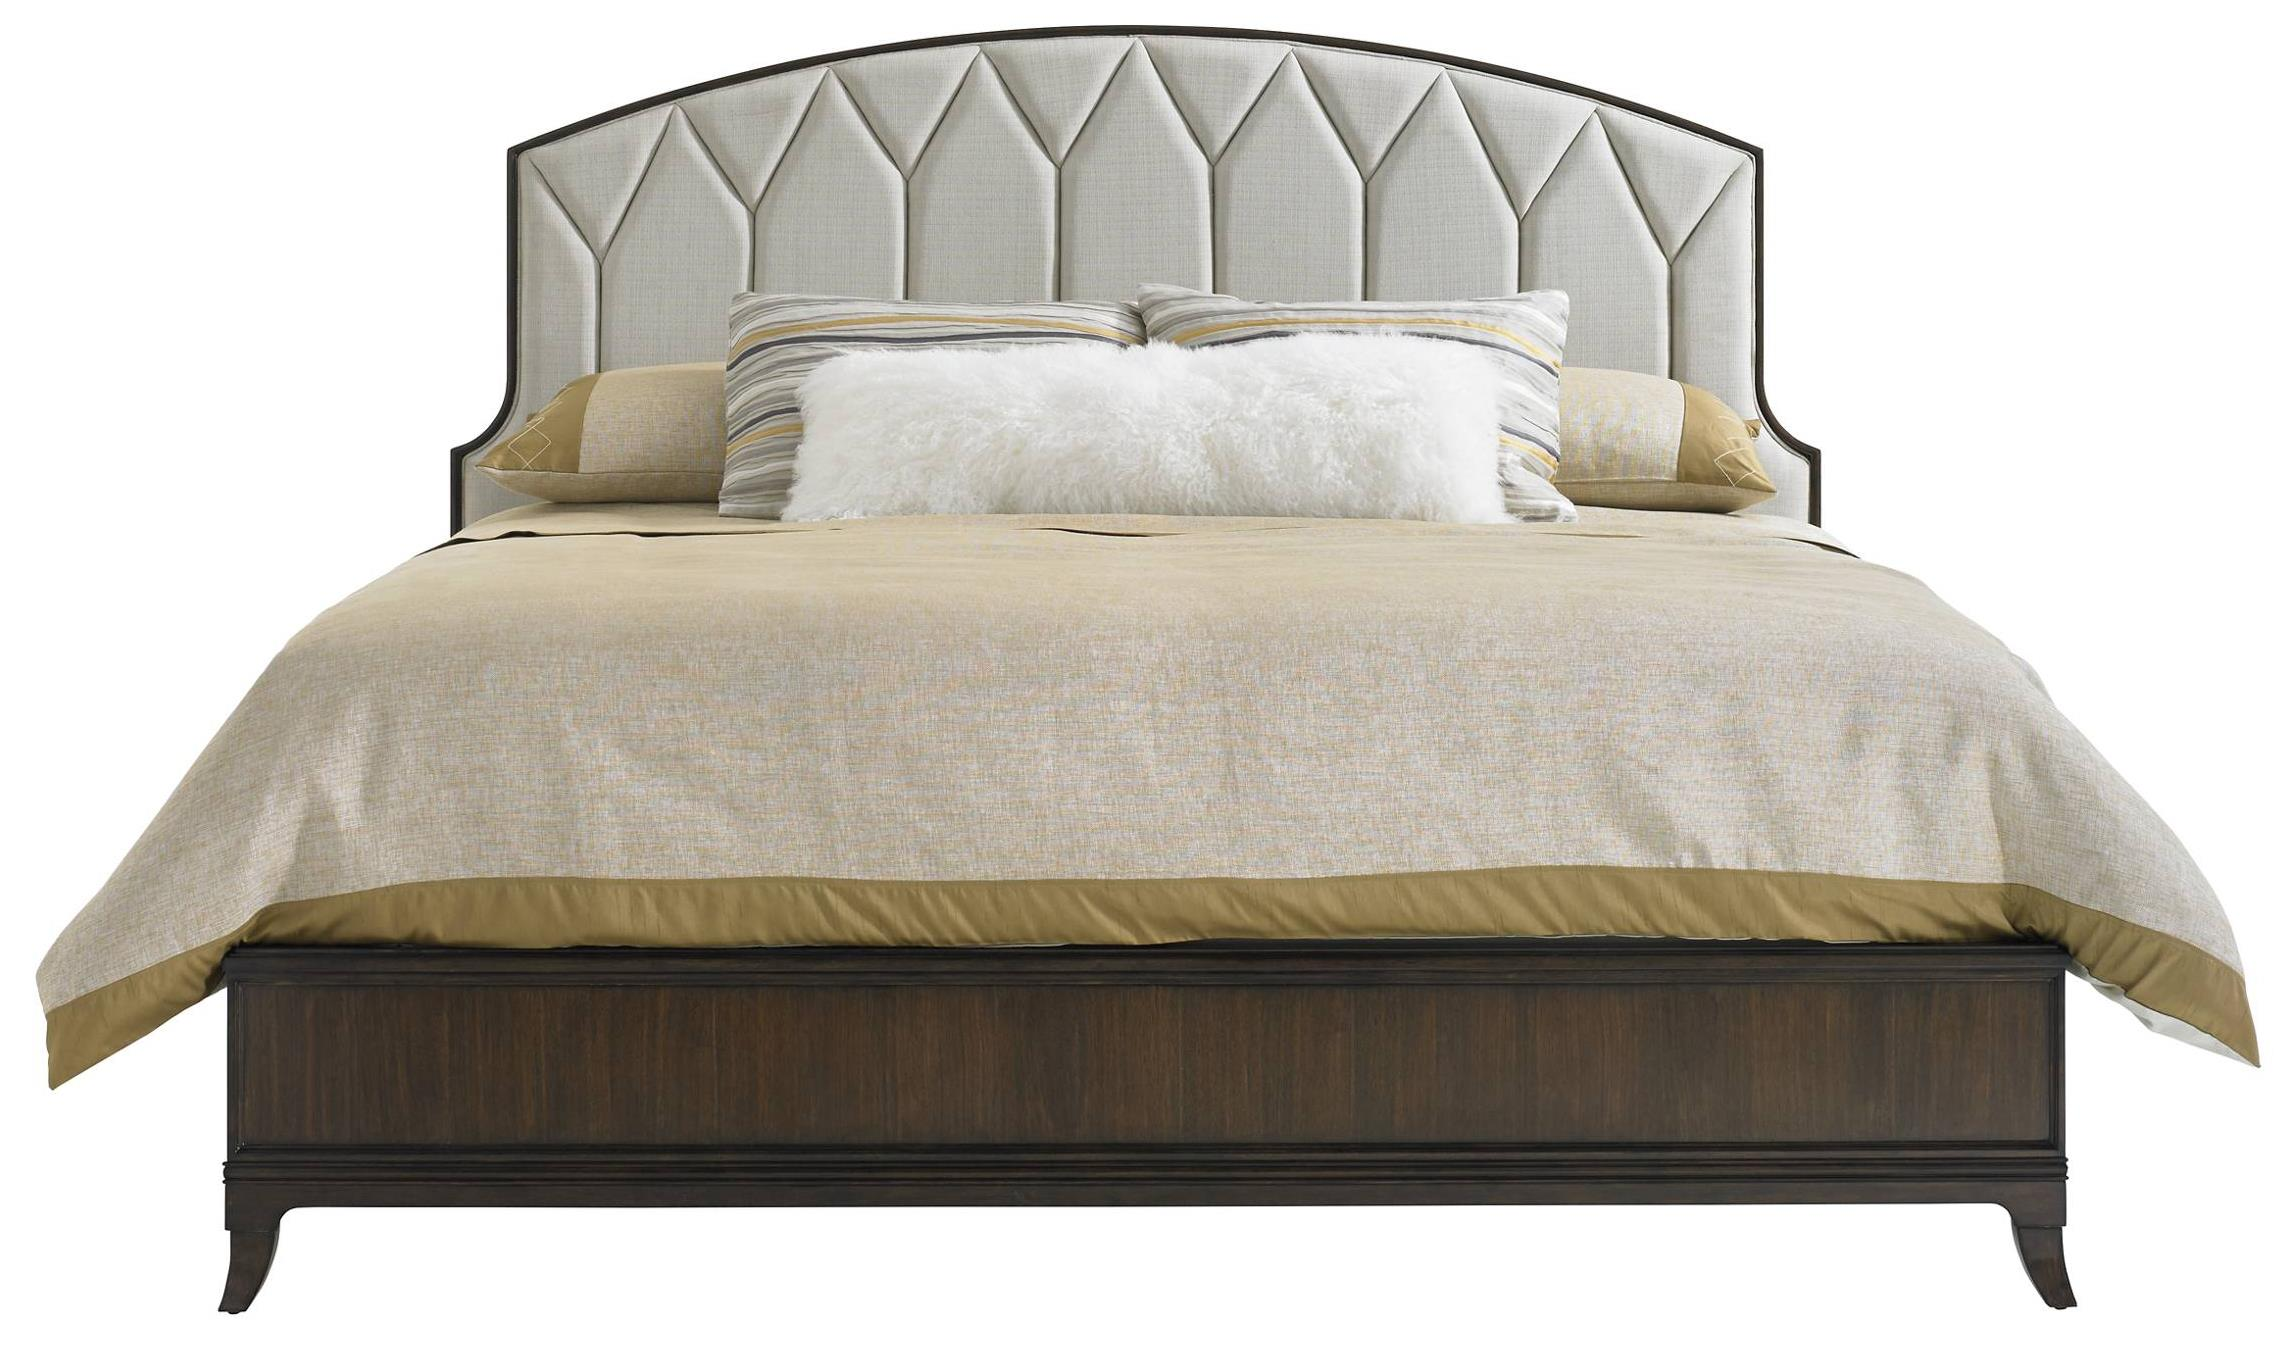 Stanley Furniture Crestaire Queen Ladera Bed - Item Number: 436-13-42